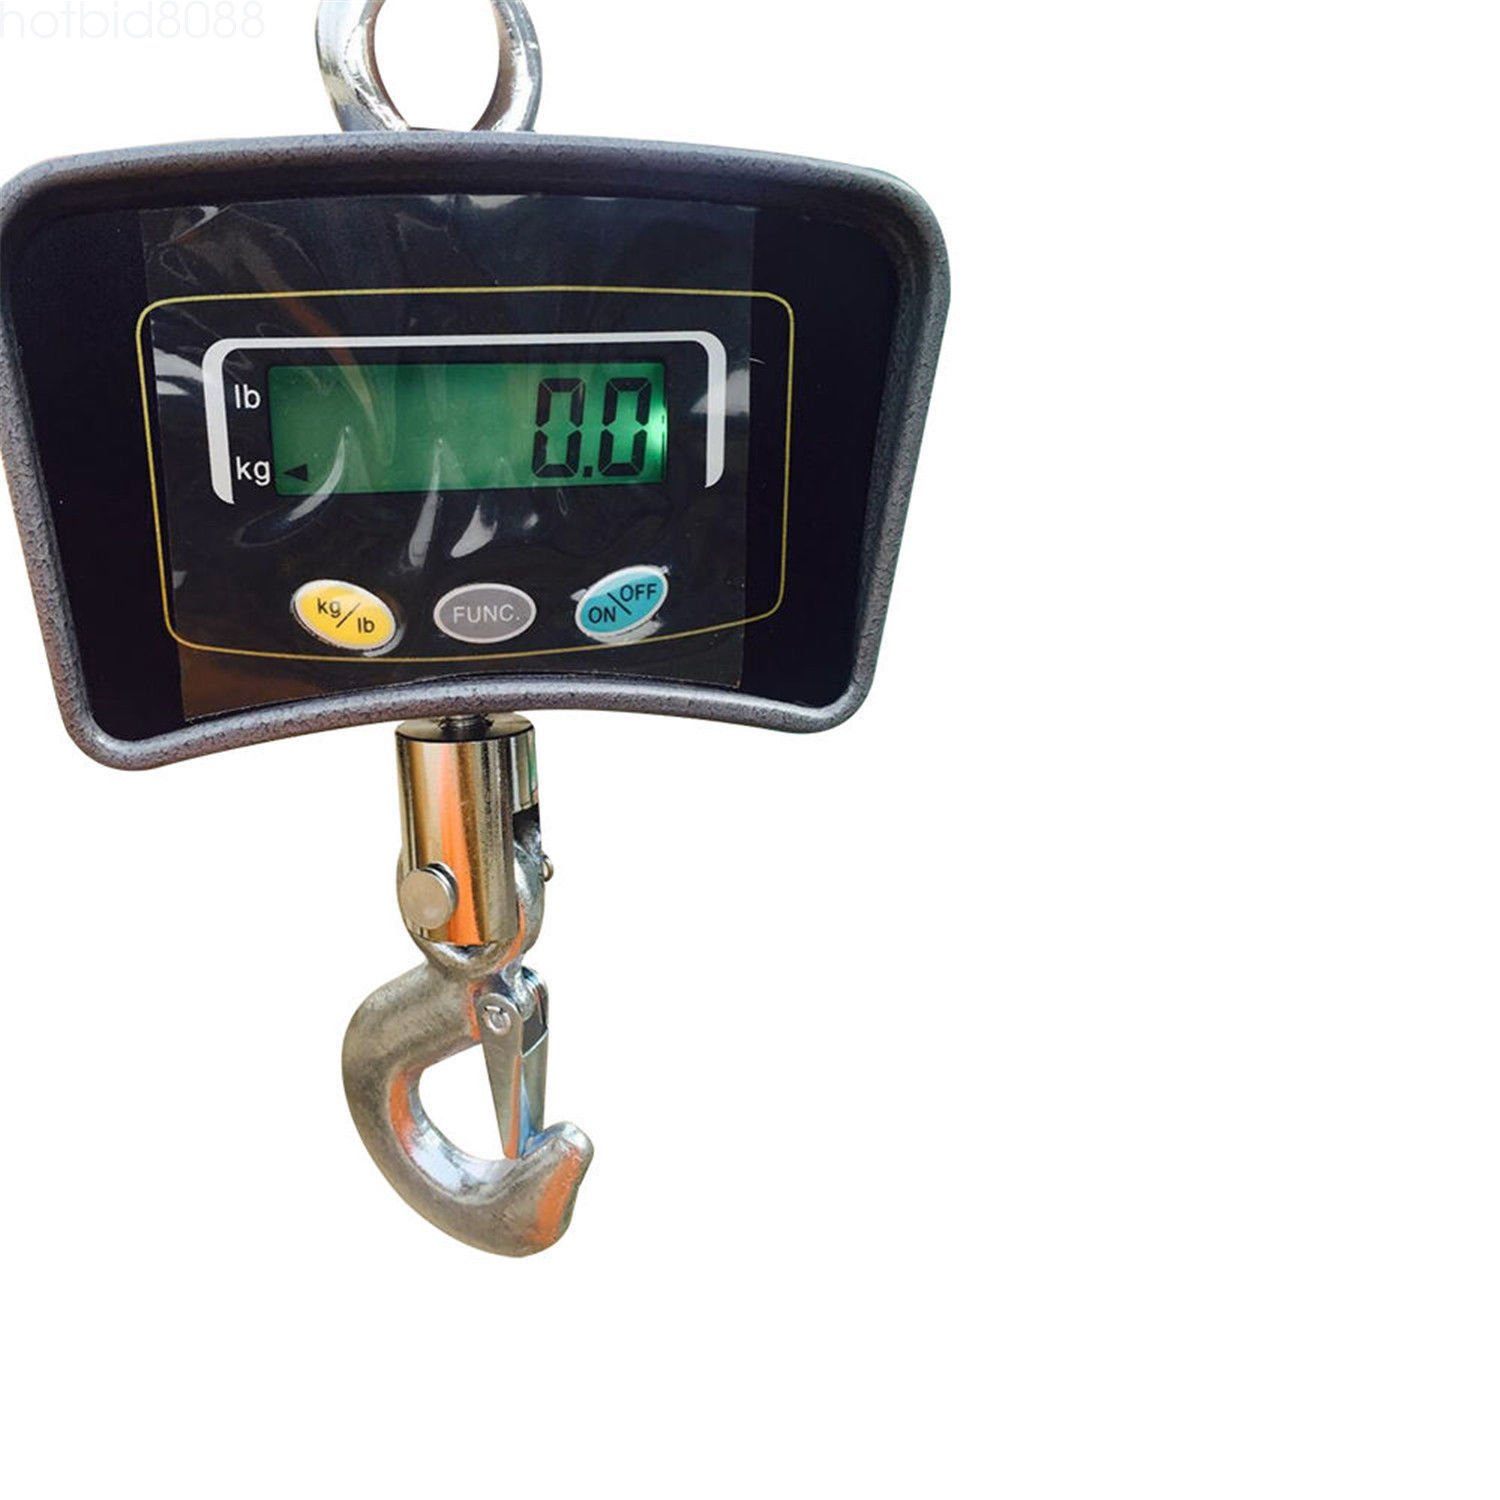 KANING Electronic Digital Portable Hook Hanging Crane Scale LCD 500 KG/1100 LBS,Industrial Heavy Duty Crane Scale Smart High Accuracy Electronic Crane Scale